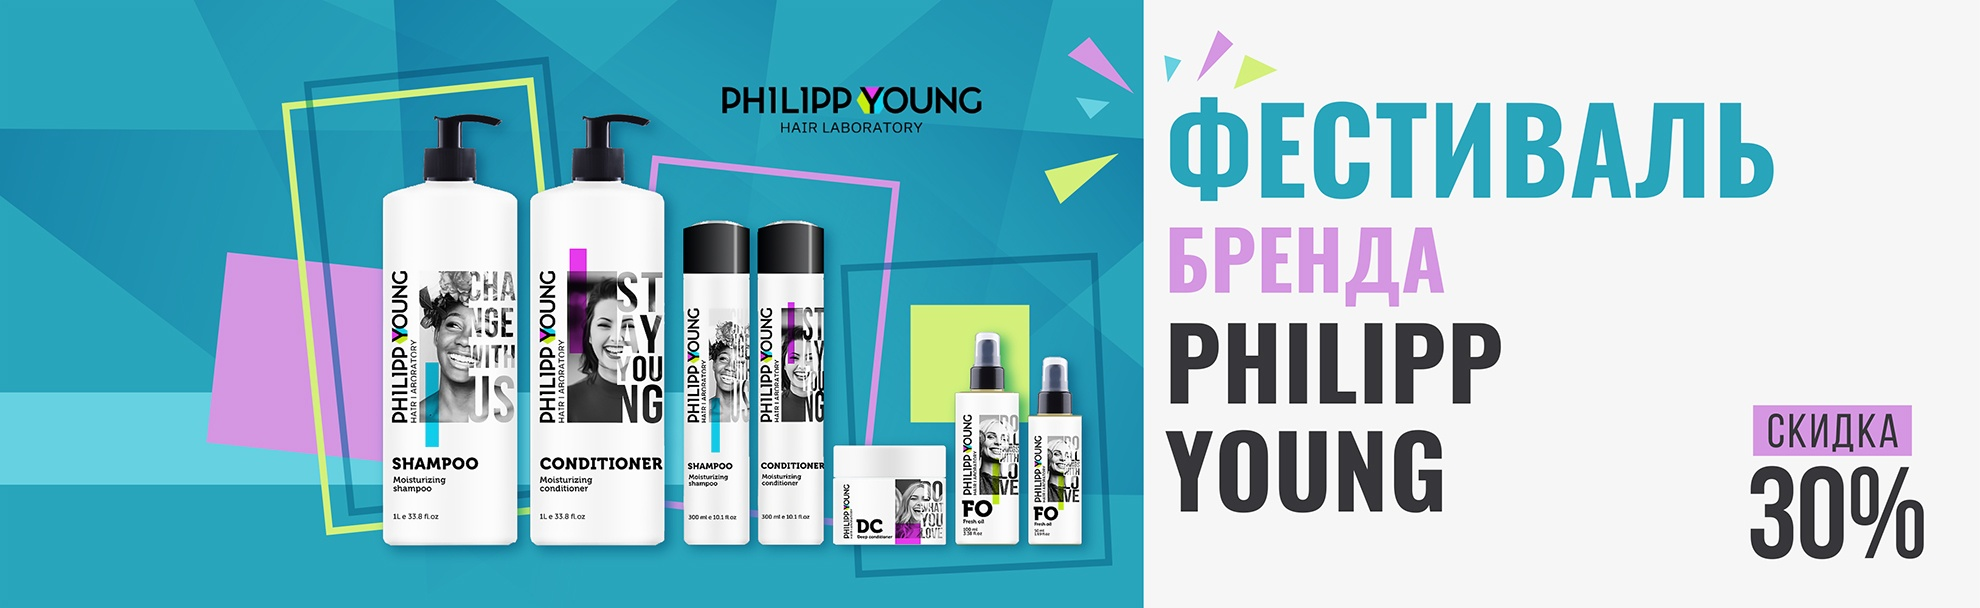 Фестиваль Philipp Young -30%